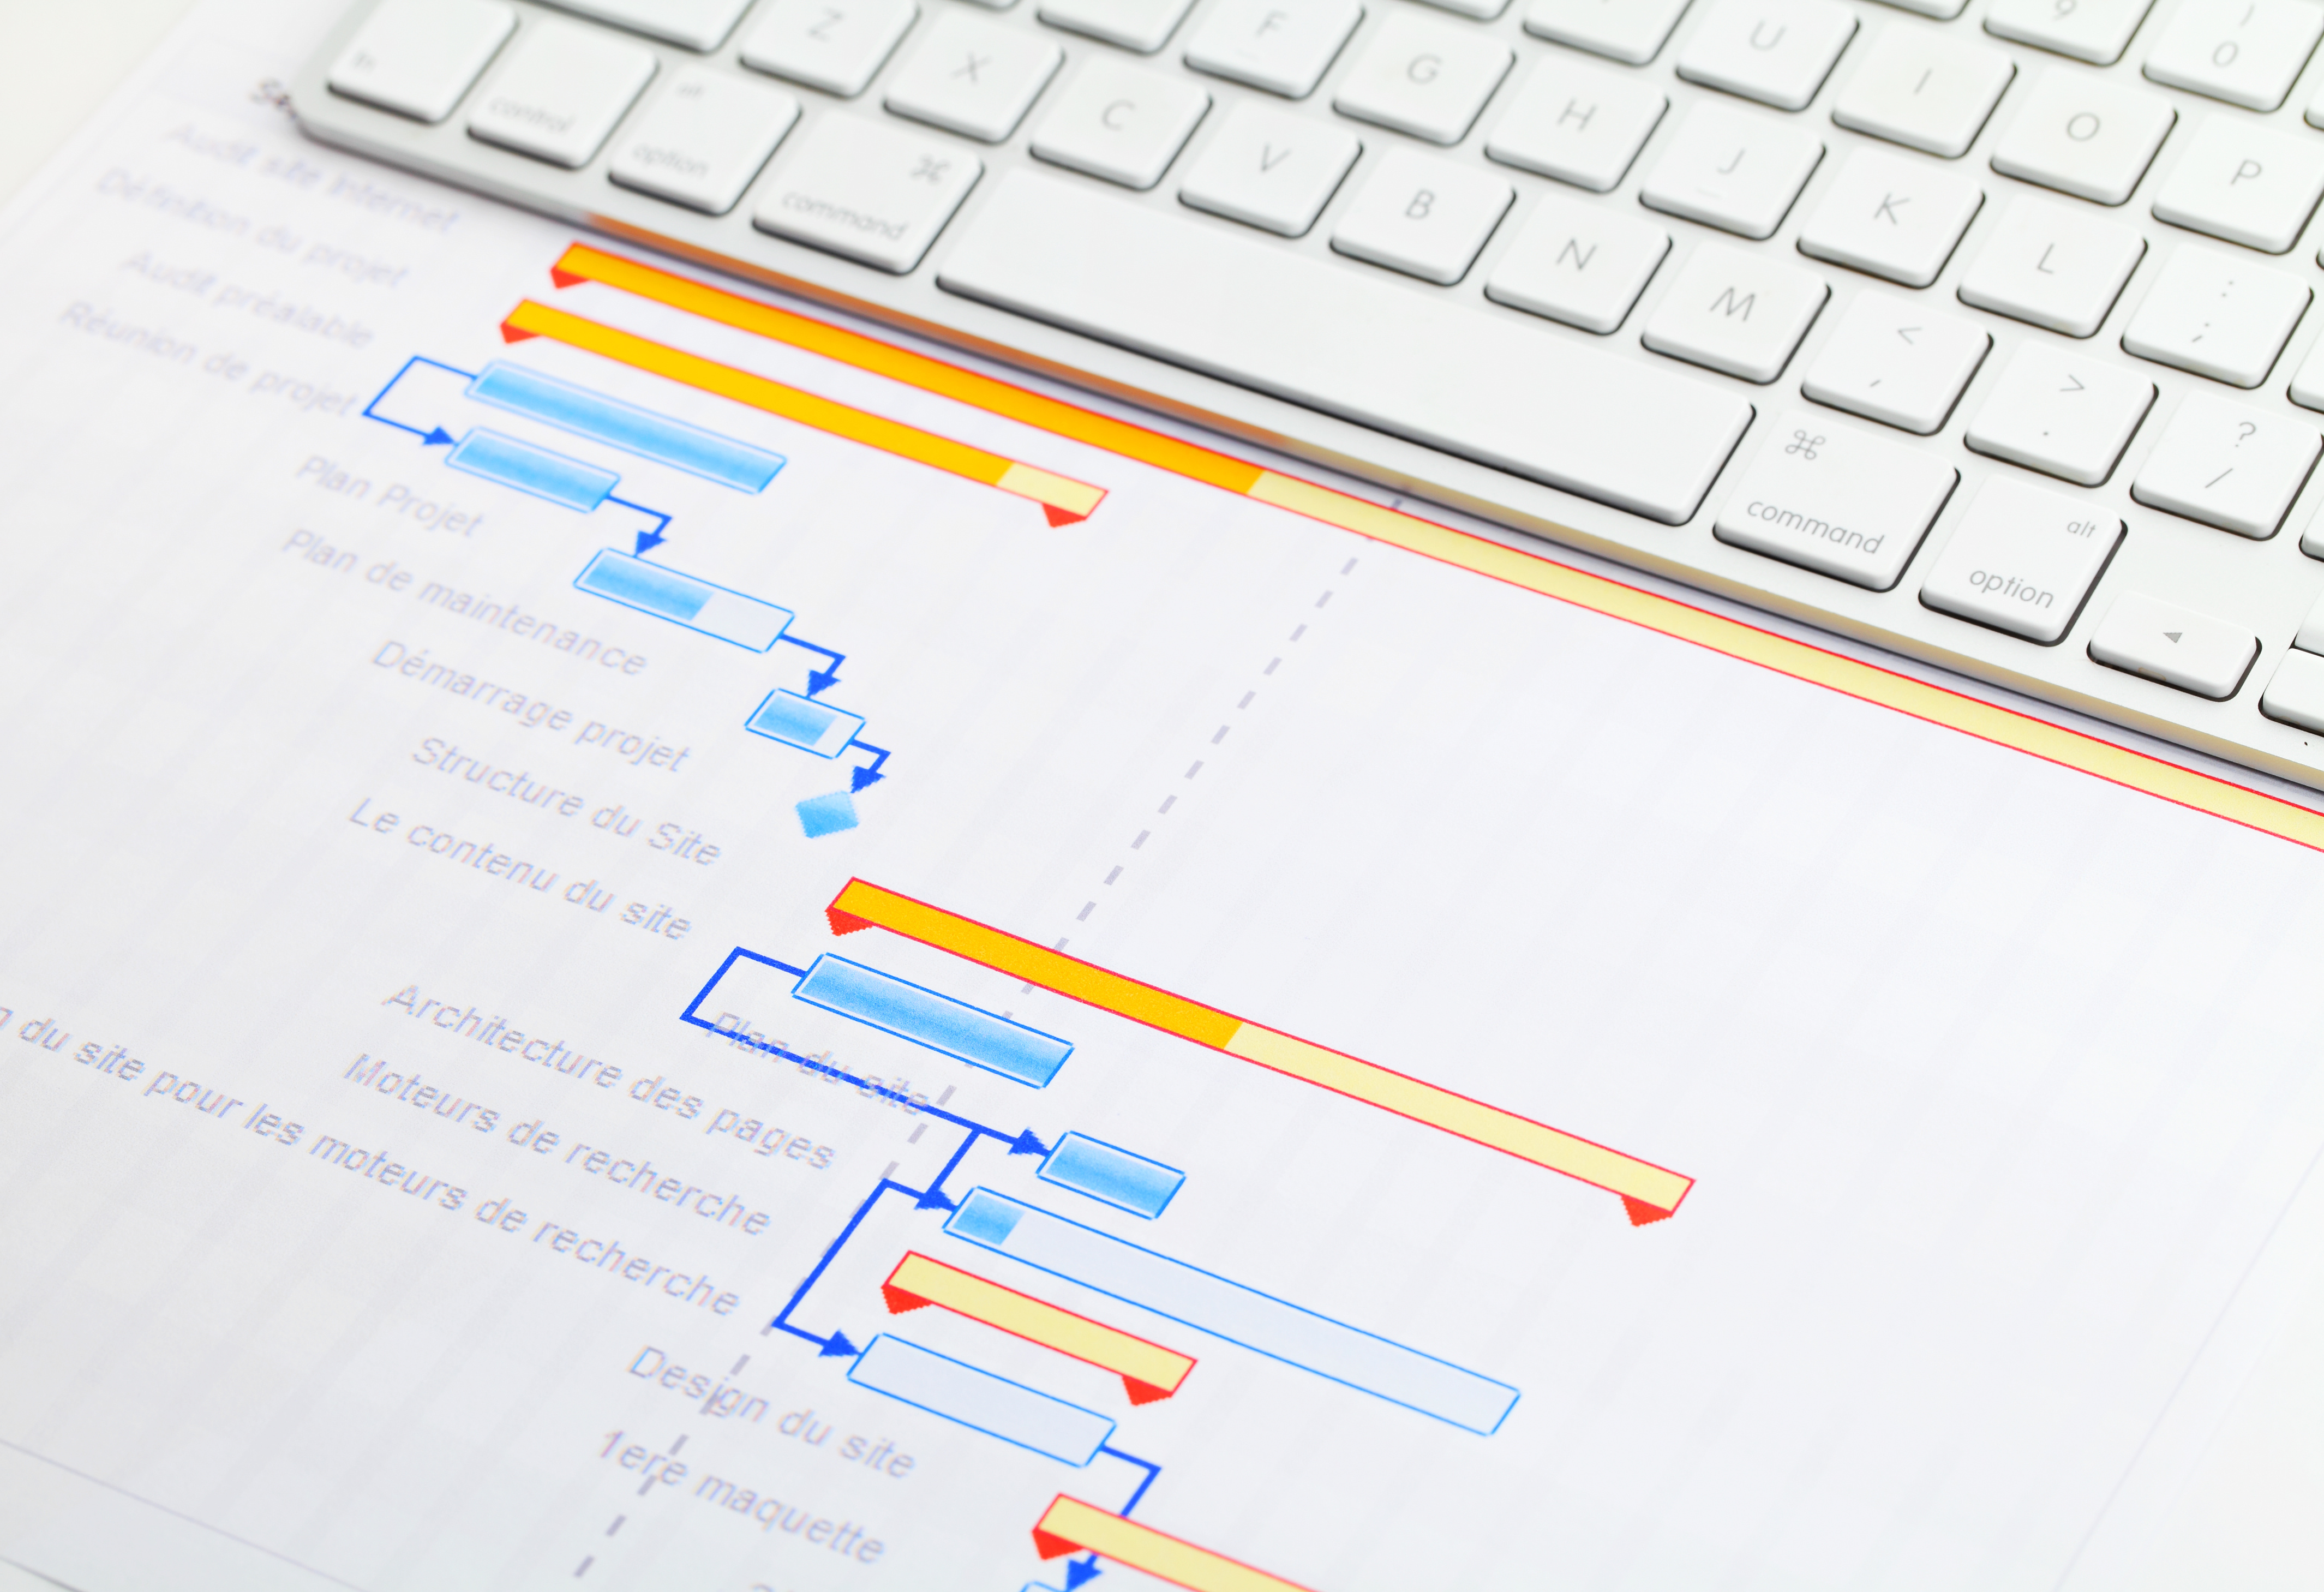 View of project phases and work packages in a project management software